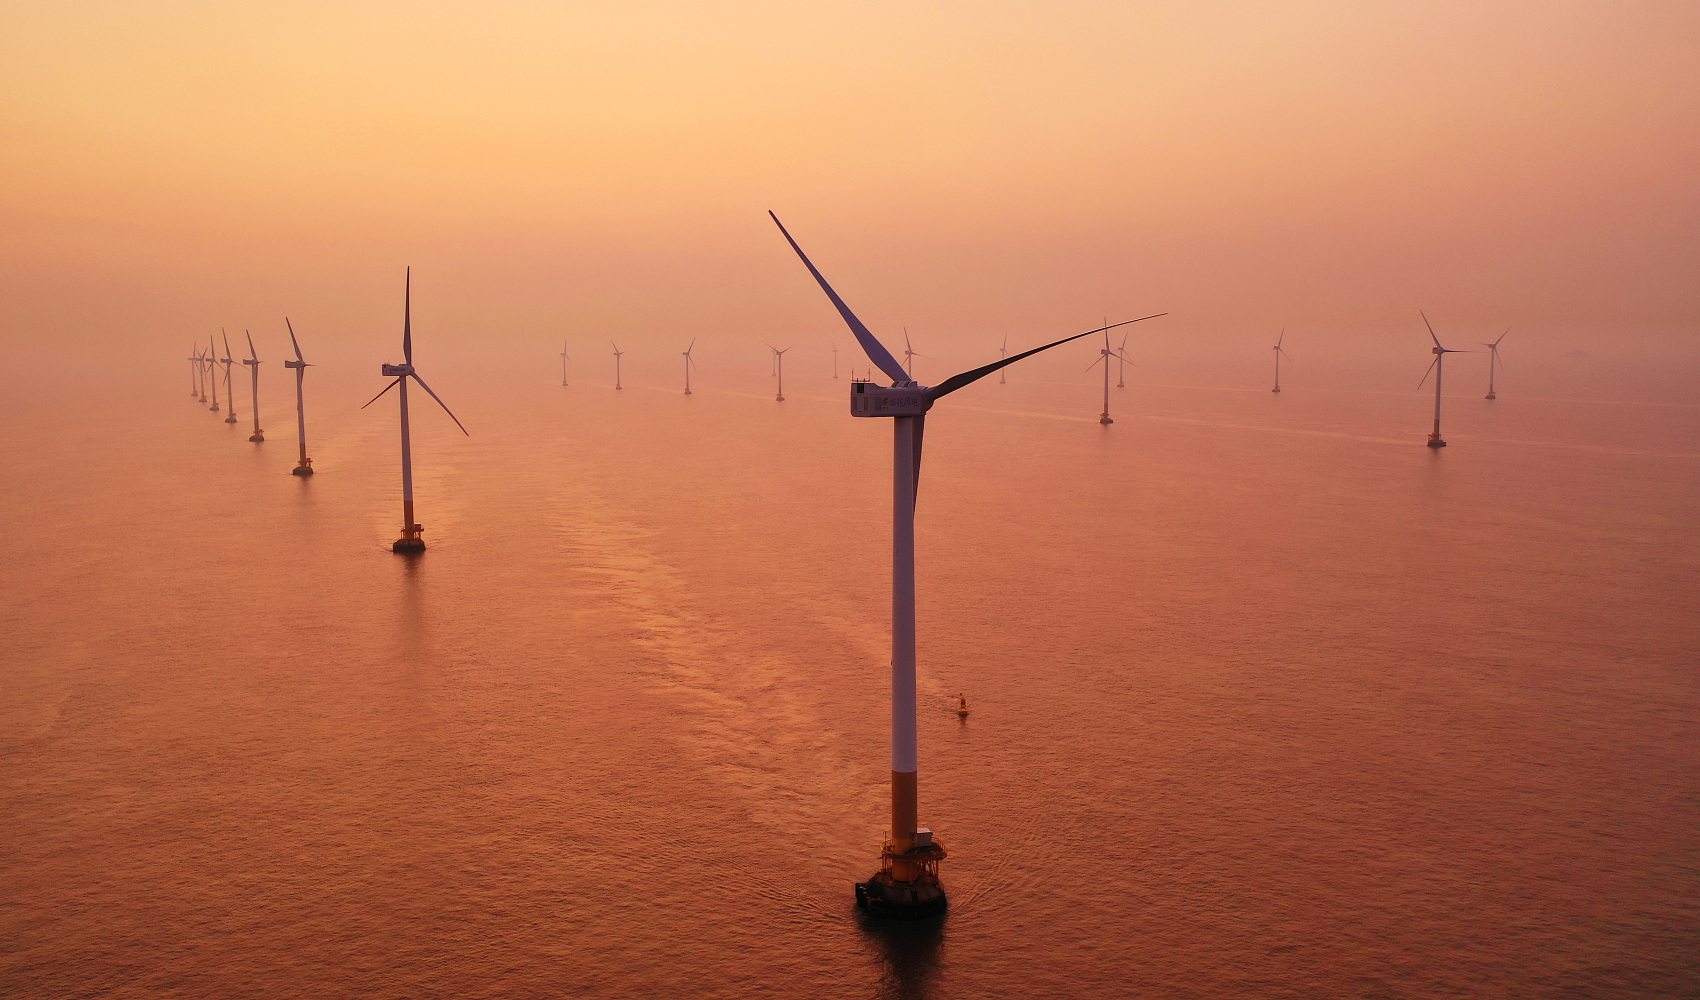 China's new offshore wind turbine rolls off production line